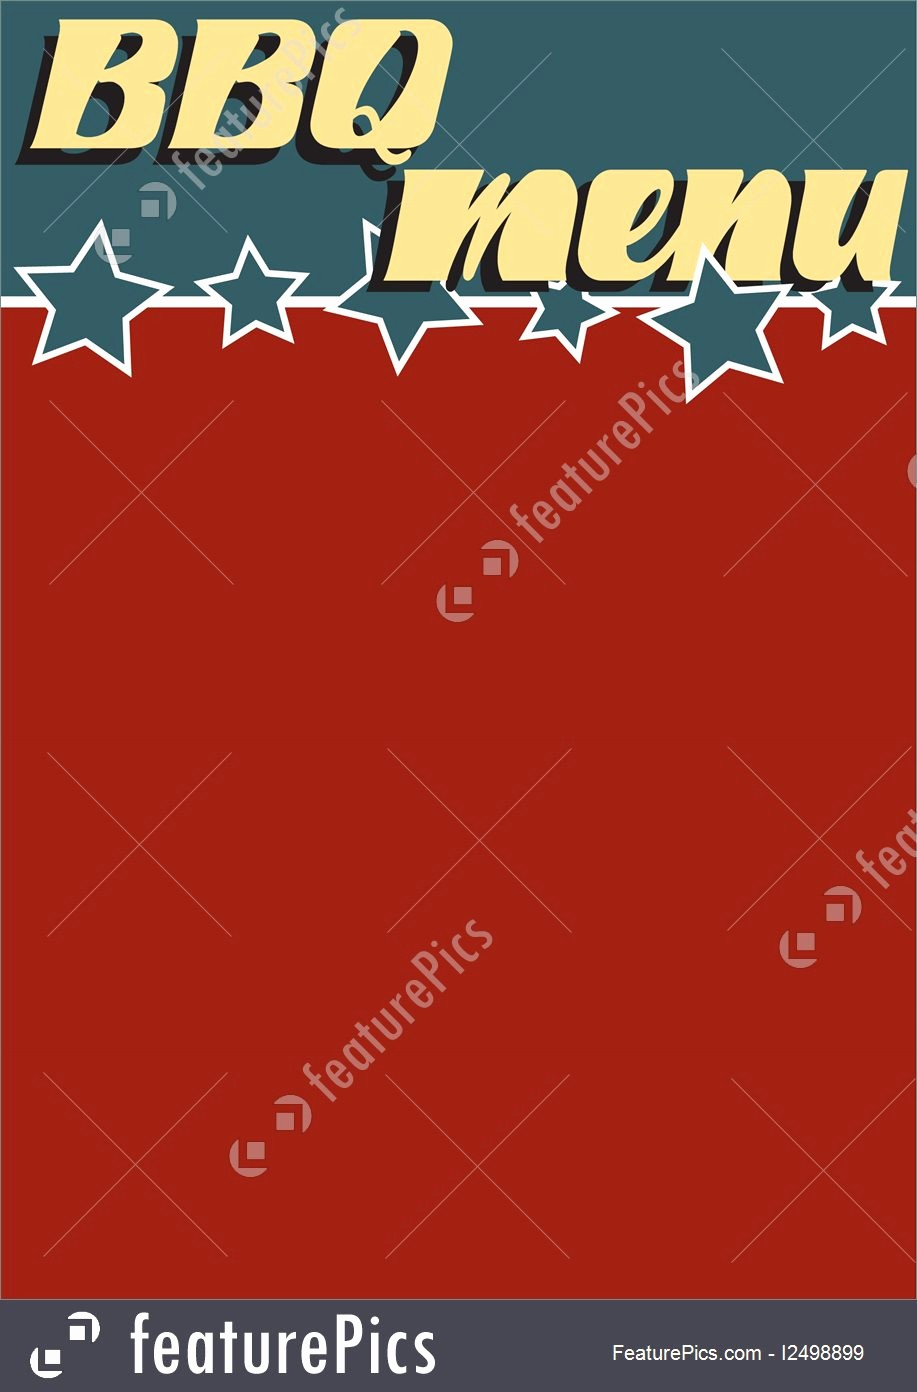 Closed 4th Of July Template Awesome Templates Vintage Style Bbq Menu Template Stock